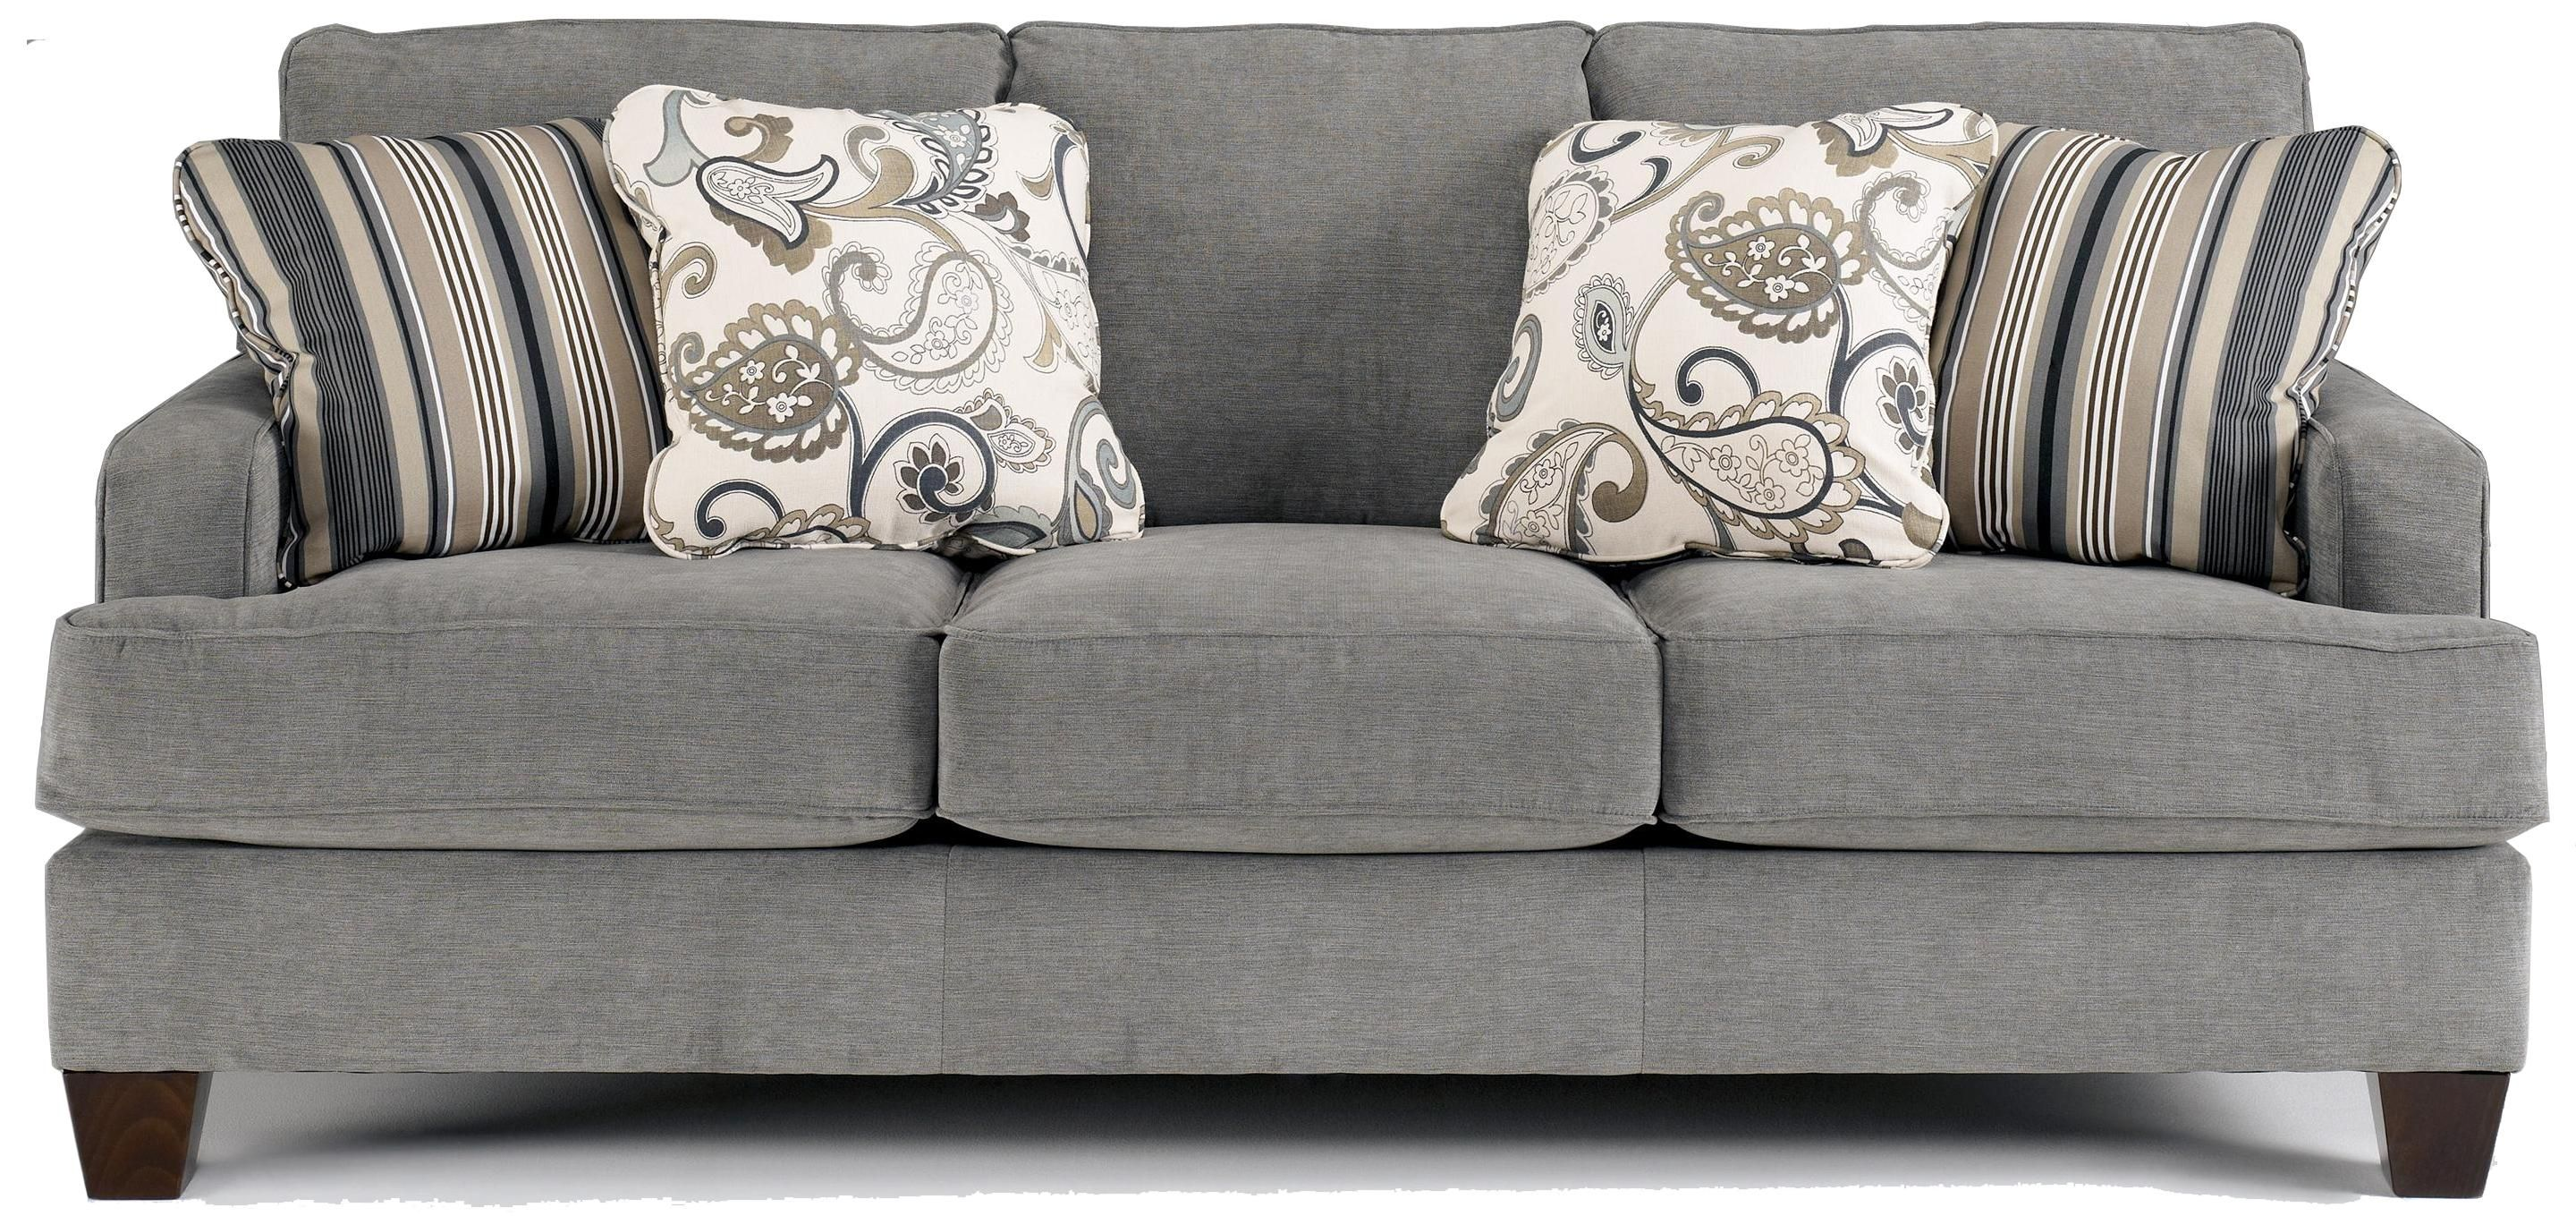 Yvette   Steel Stationary Sofa W/ Loose Seat Cushions By Ashley Furniture    Miskelly Furniture